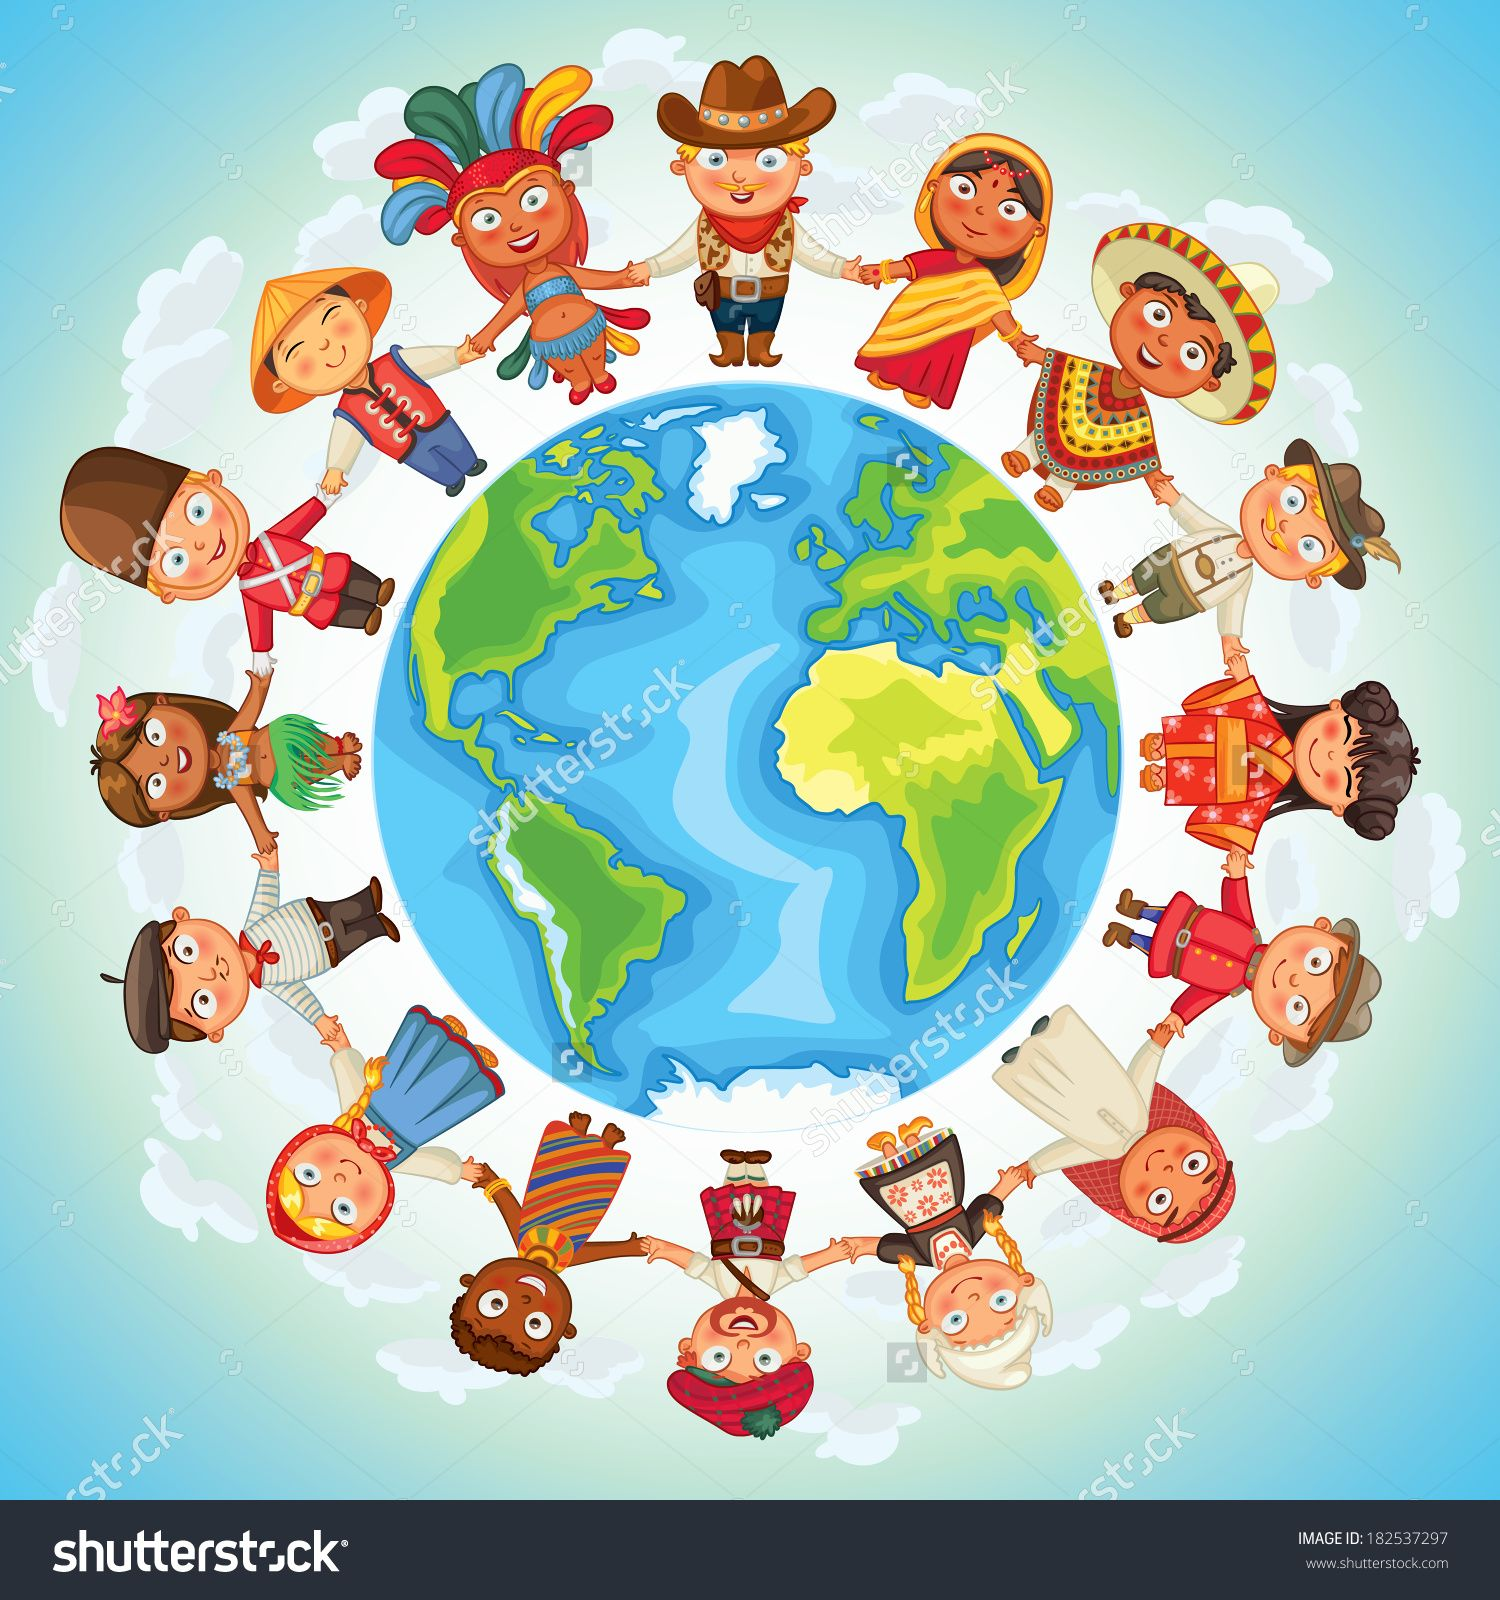 Multicultural character on planet. Globe clipart culture